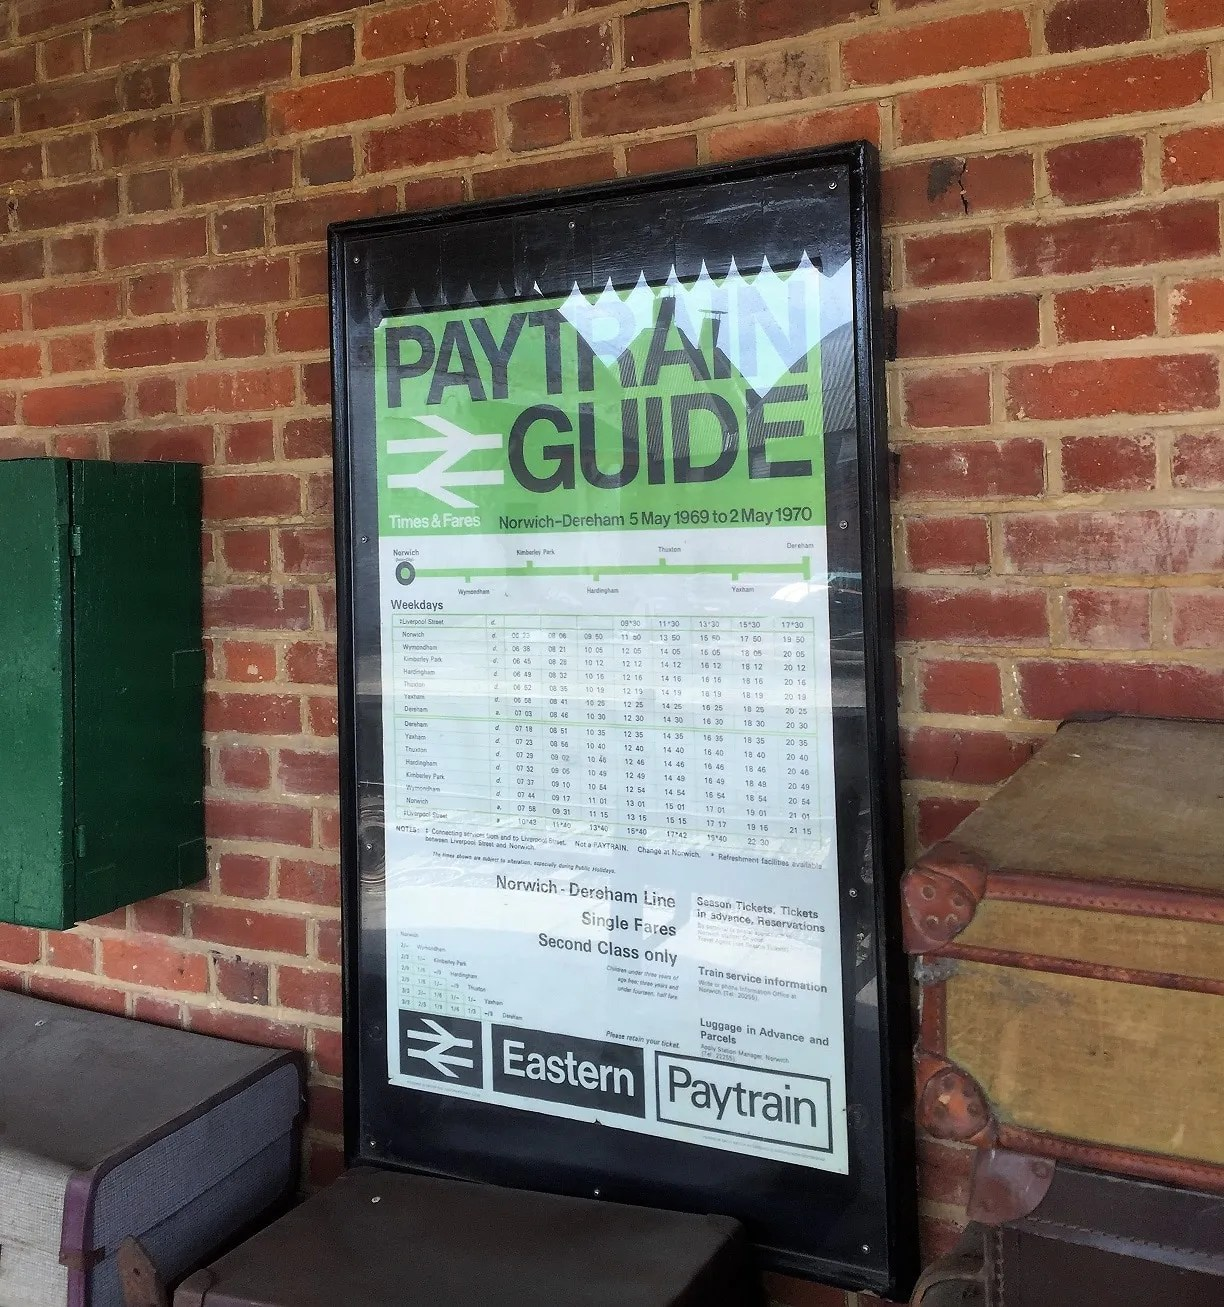 British Railways poster for PayTrain fares.